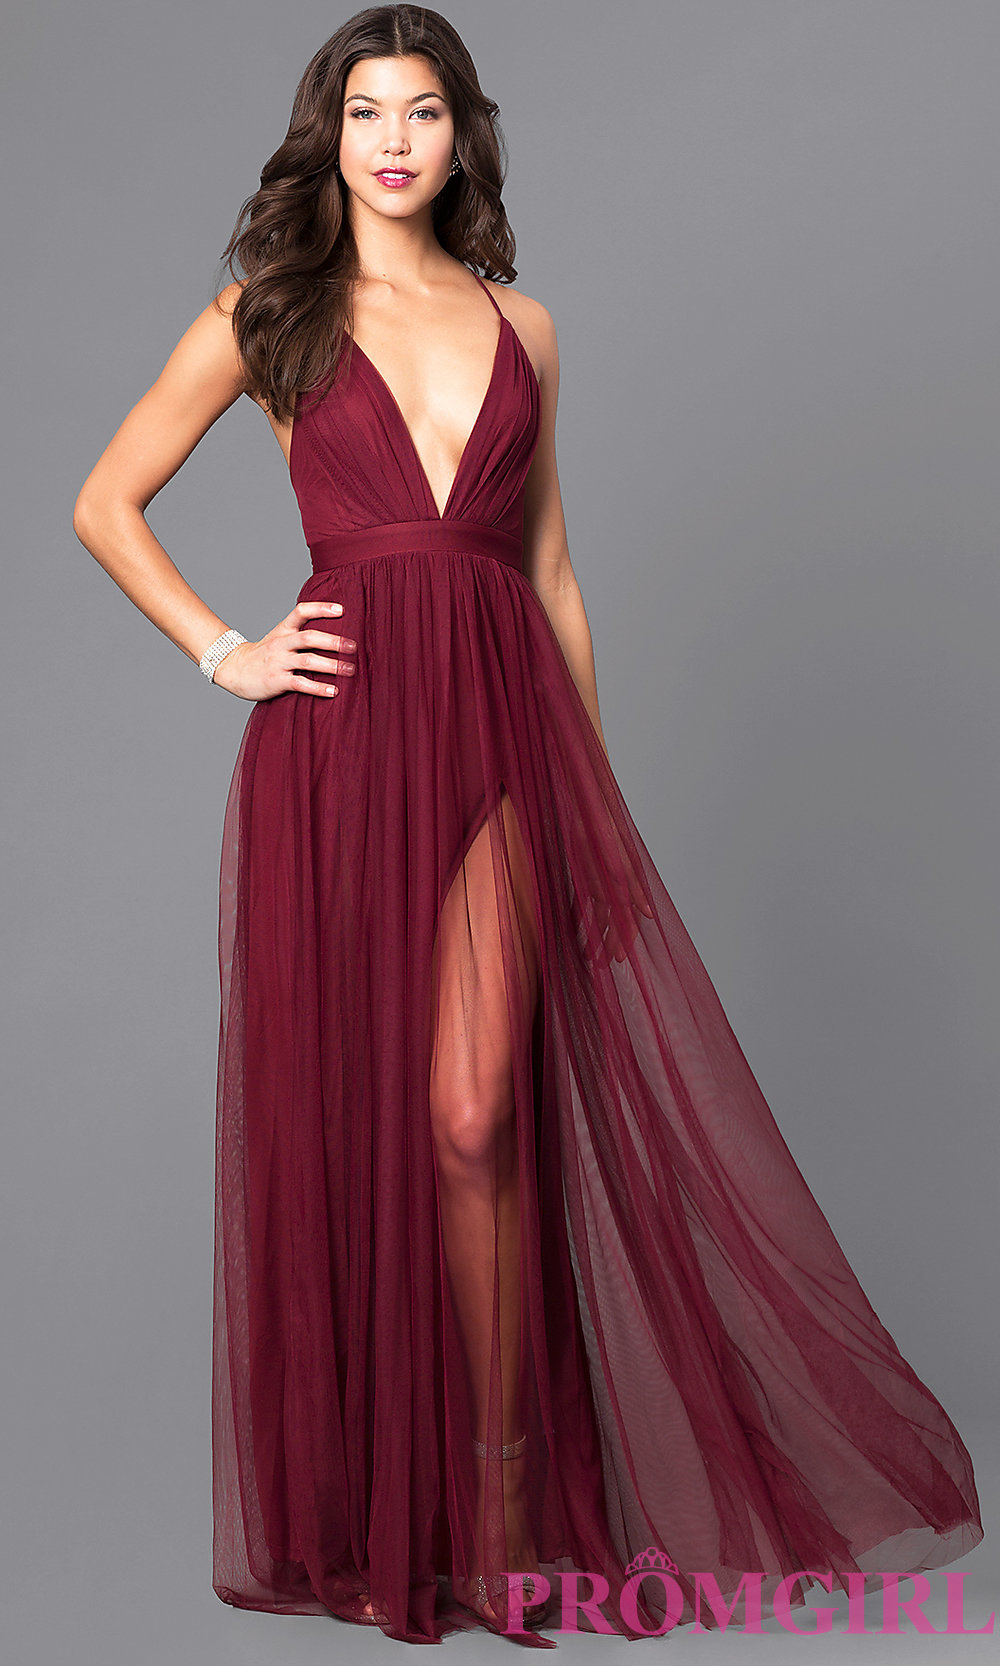 Flowy A-line V-neck Burgundy Tulle Ball Dress with Side Slit ...